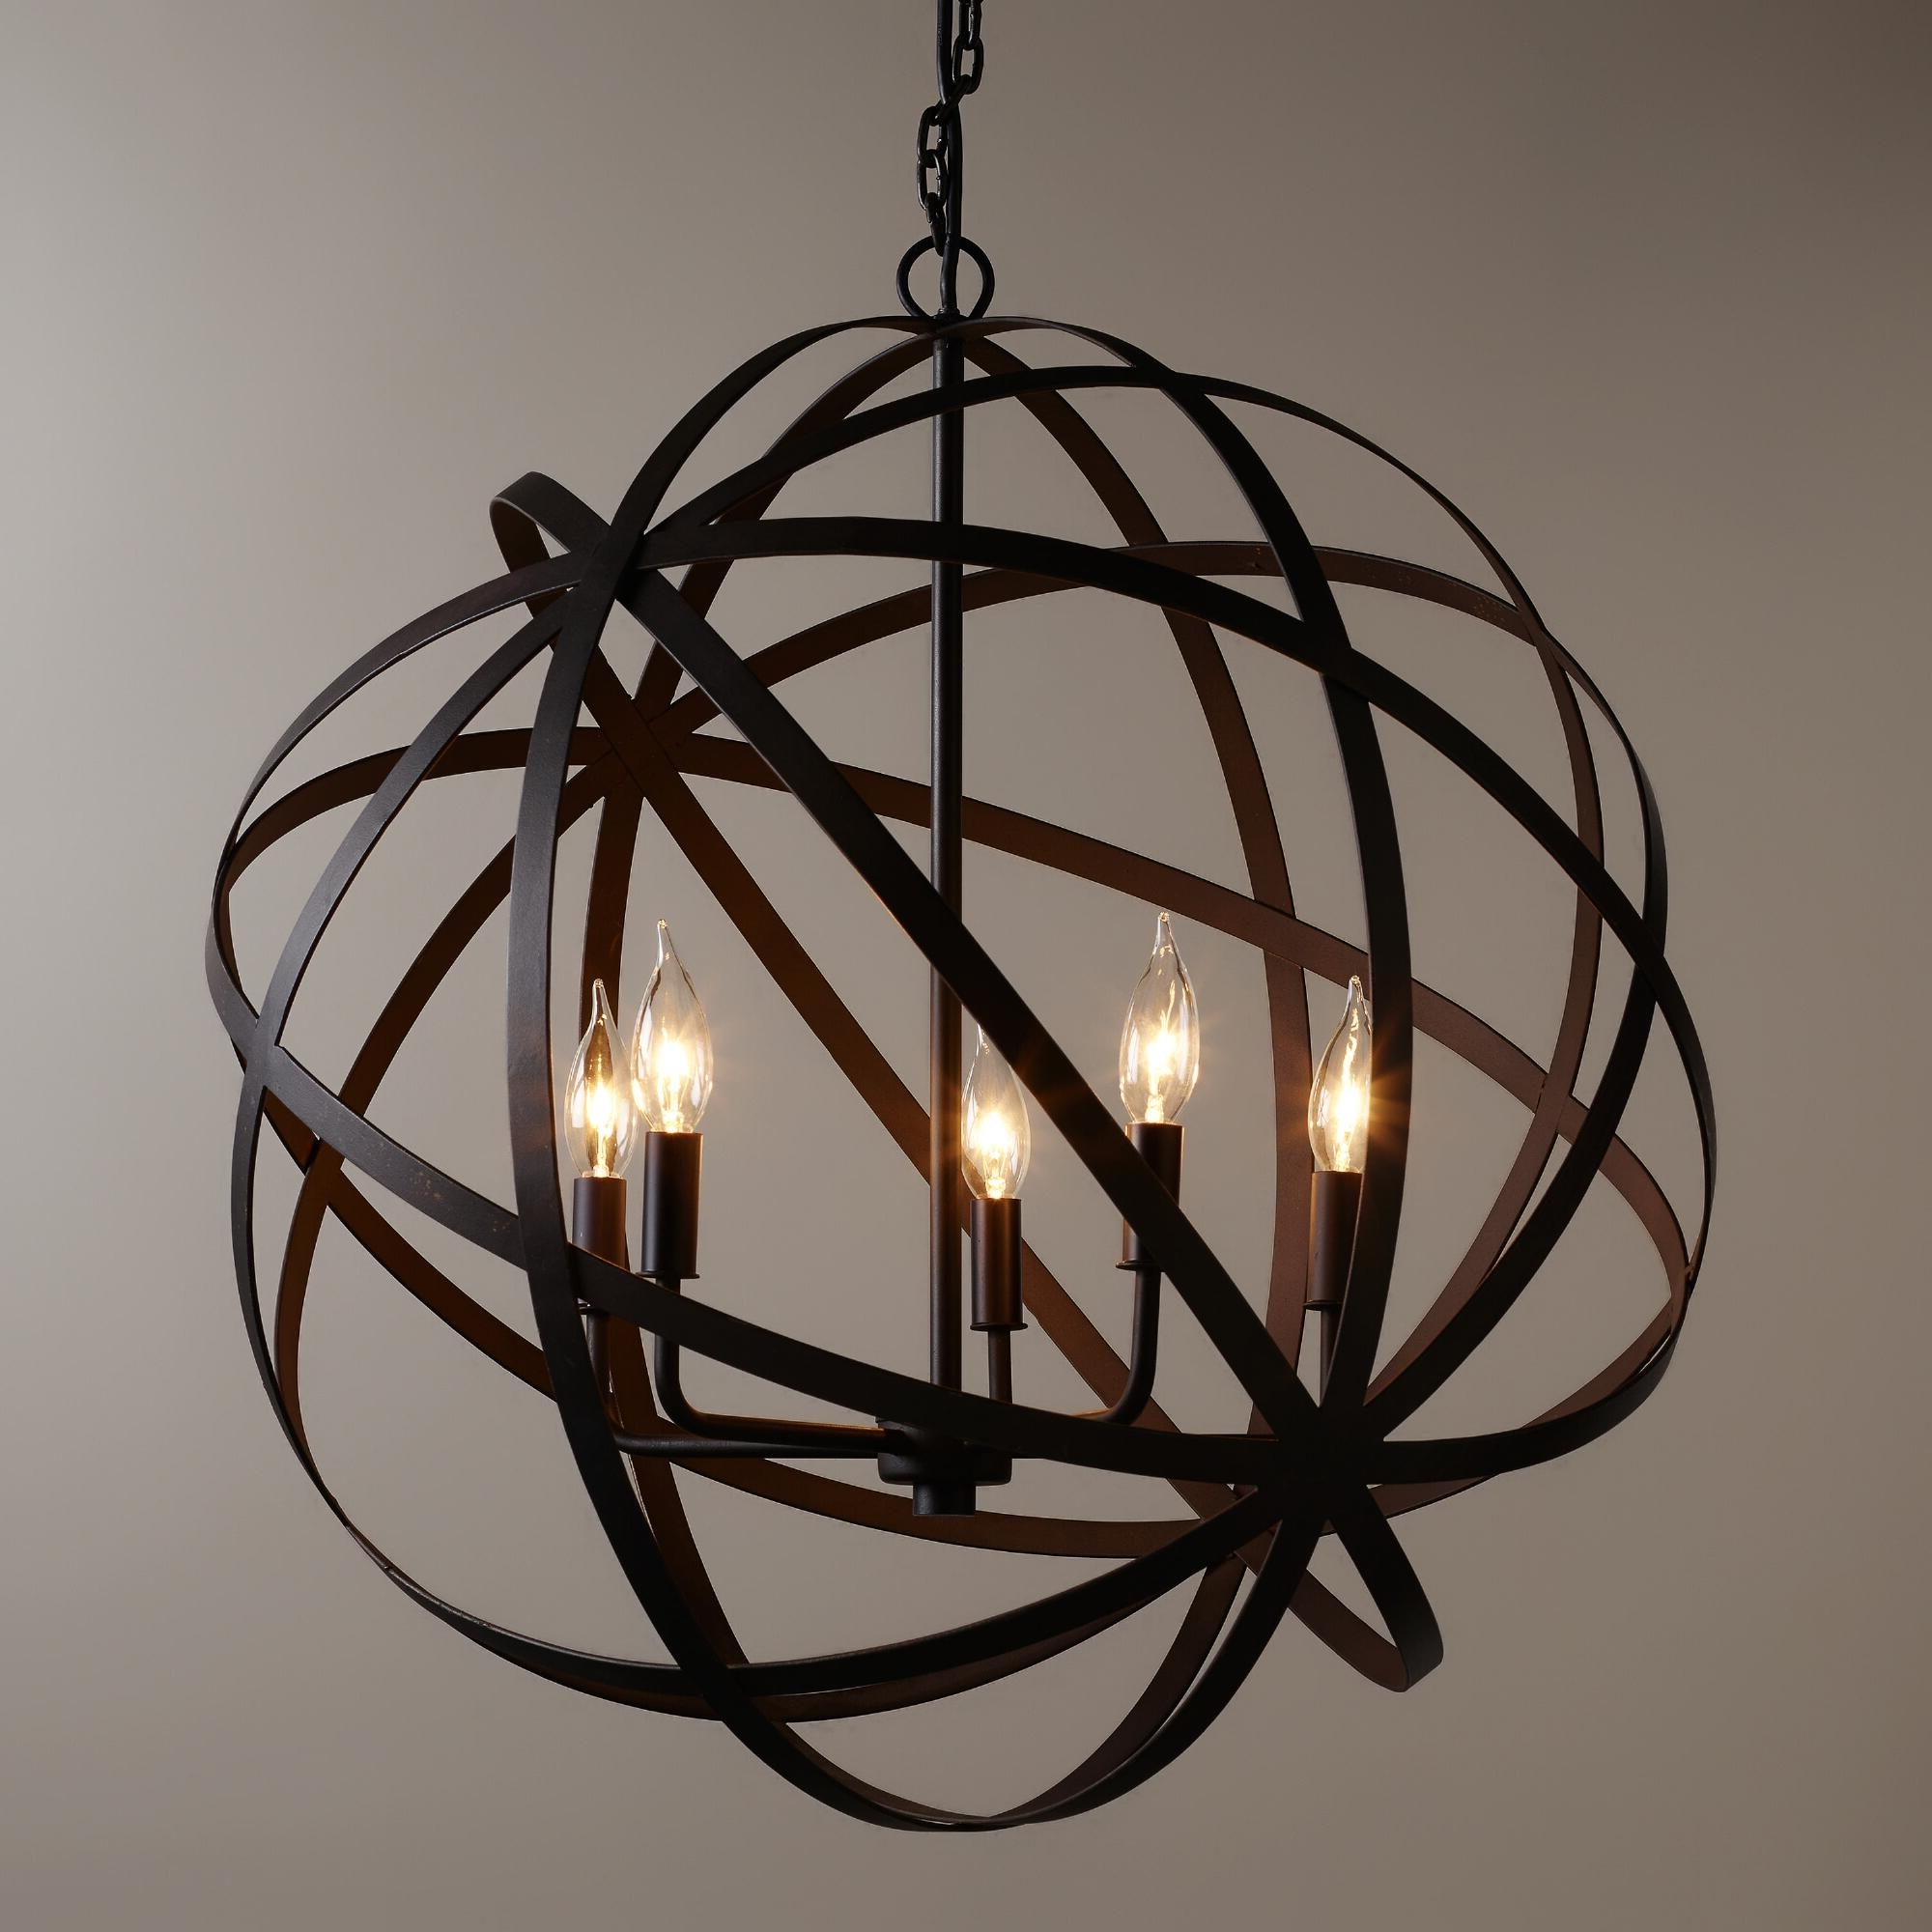 Light : Creative Orb Chandelier About Interior Designing Home Ideas With Fashionable Metal Chandeliers (View 3 of 20)